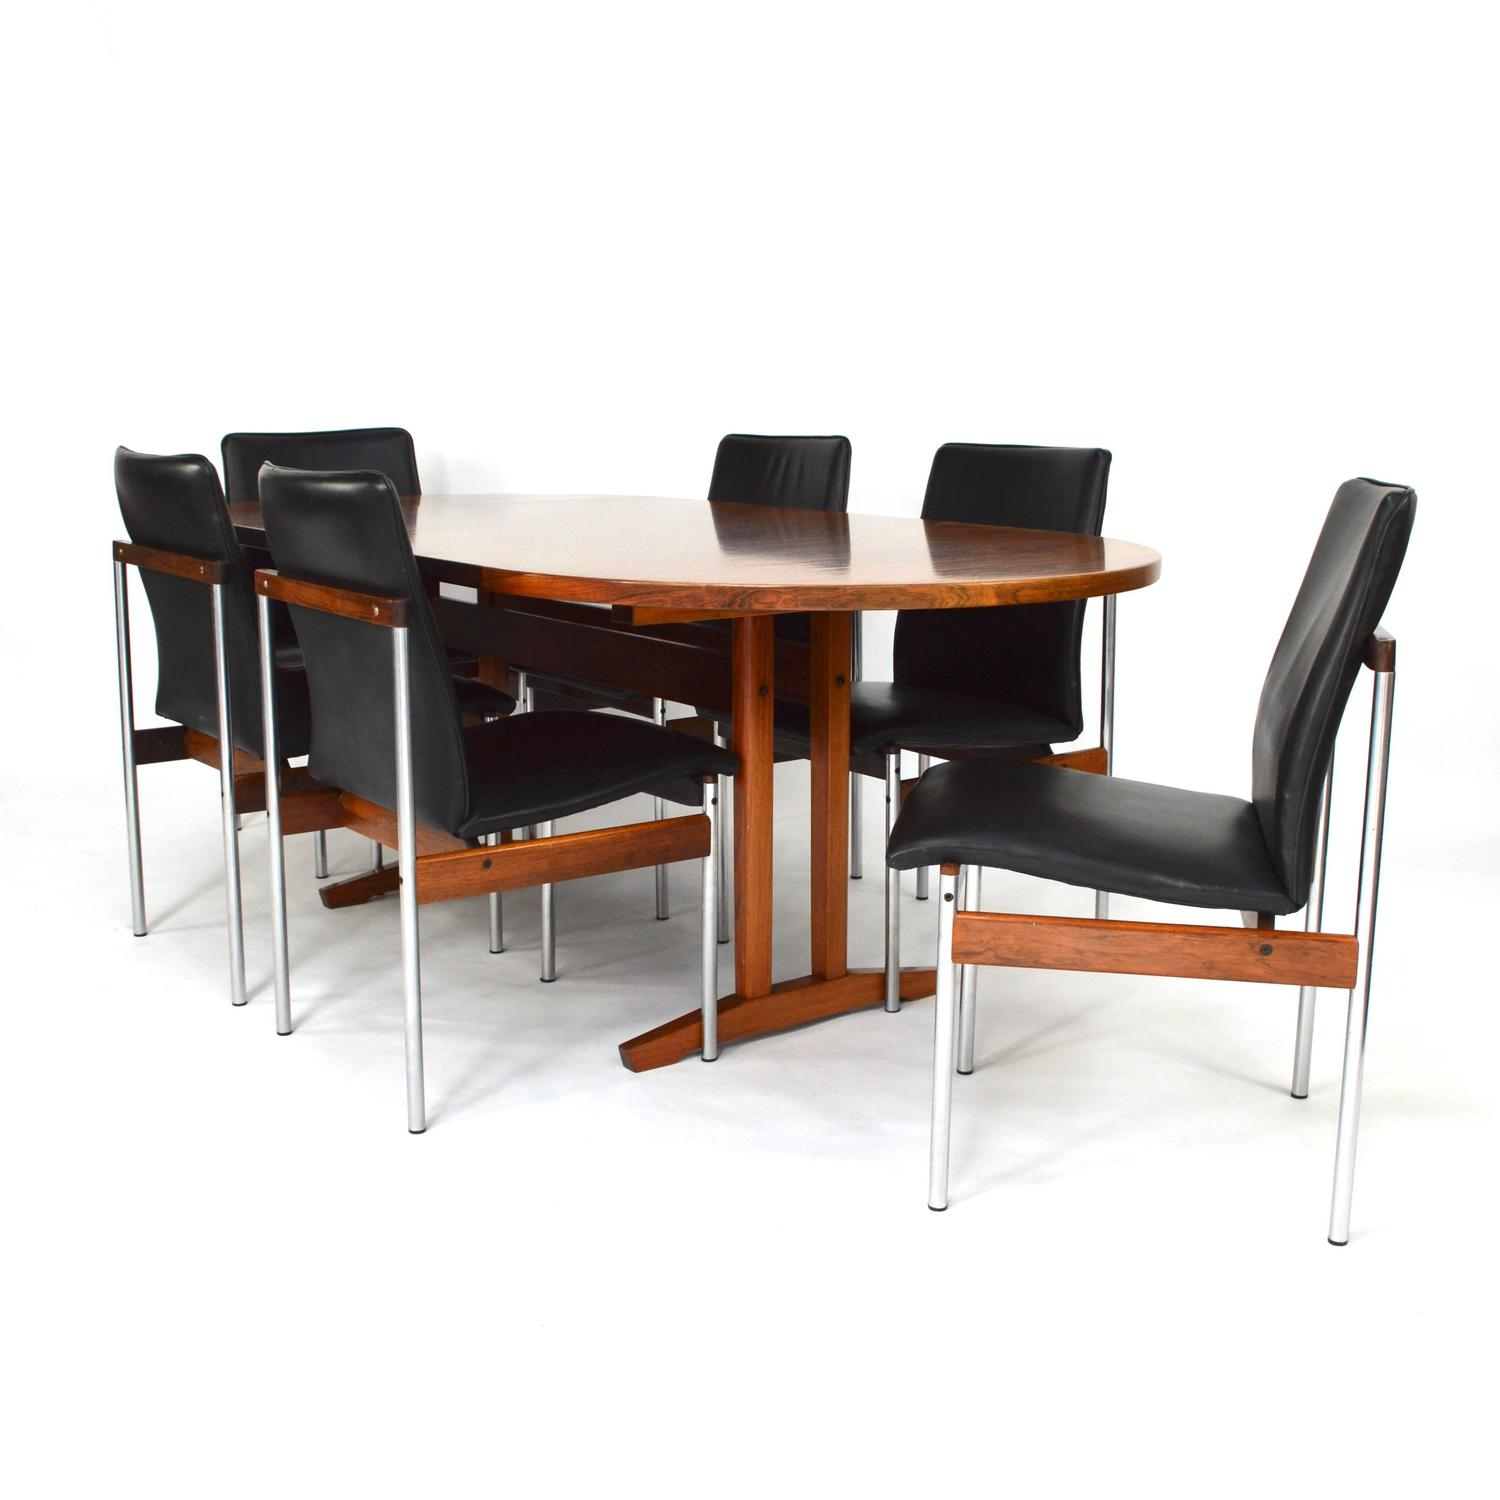 Set Of Six Brazilian Rosewood, Leather And Chrome Dining